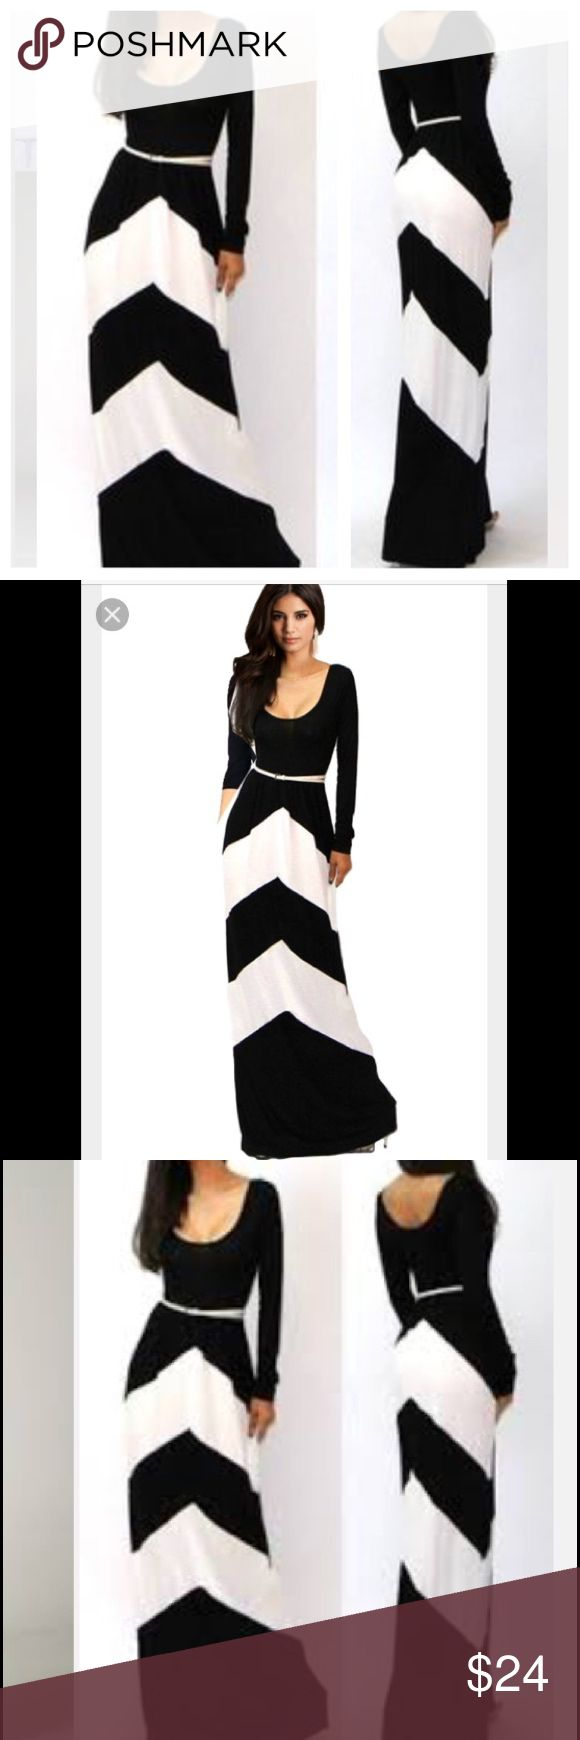 Maxi chevron dress New in package maxi dress chevron design, black and white.long sleeve, belt included. 💙bundle and save💙 Dresses Maxi